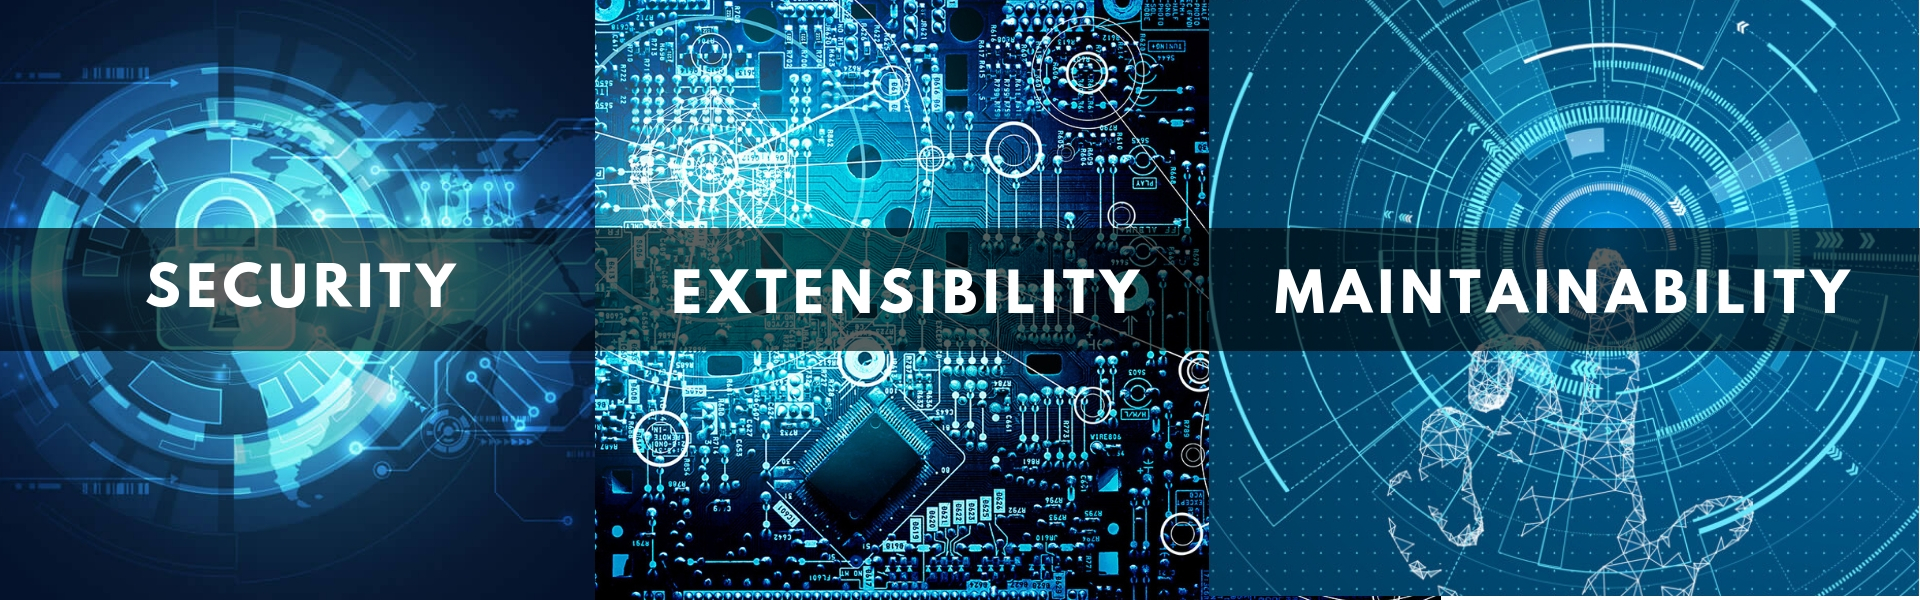 Security Extensibility Maintainability